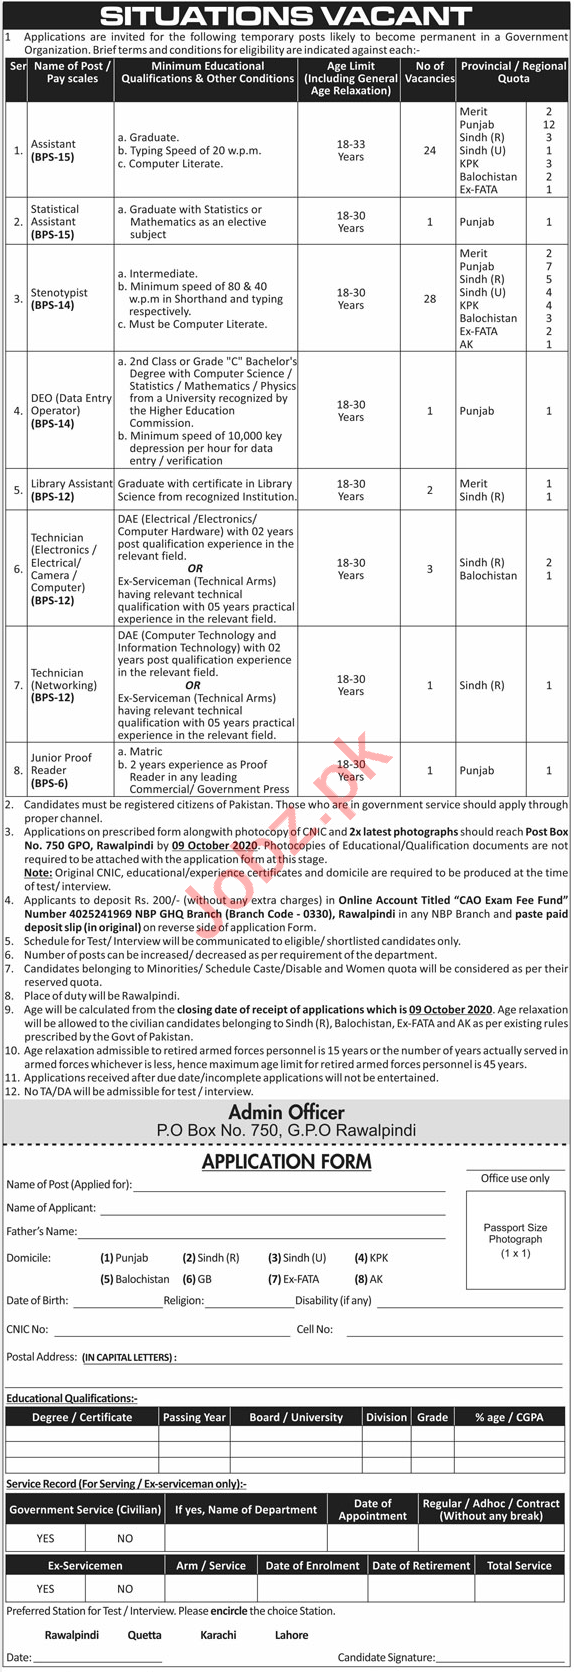 Statistical Assistant & Stenotypist Jobs in Pakistan Army